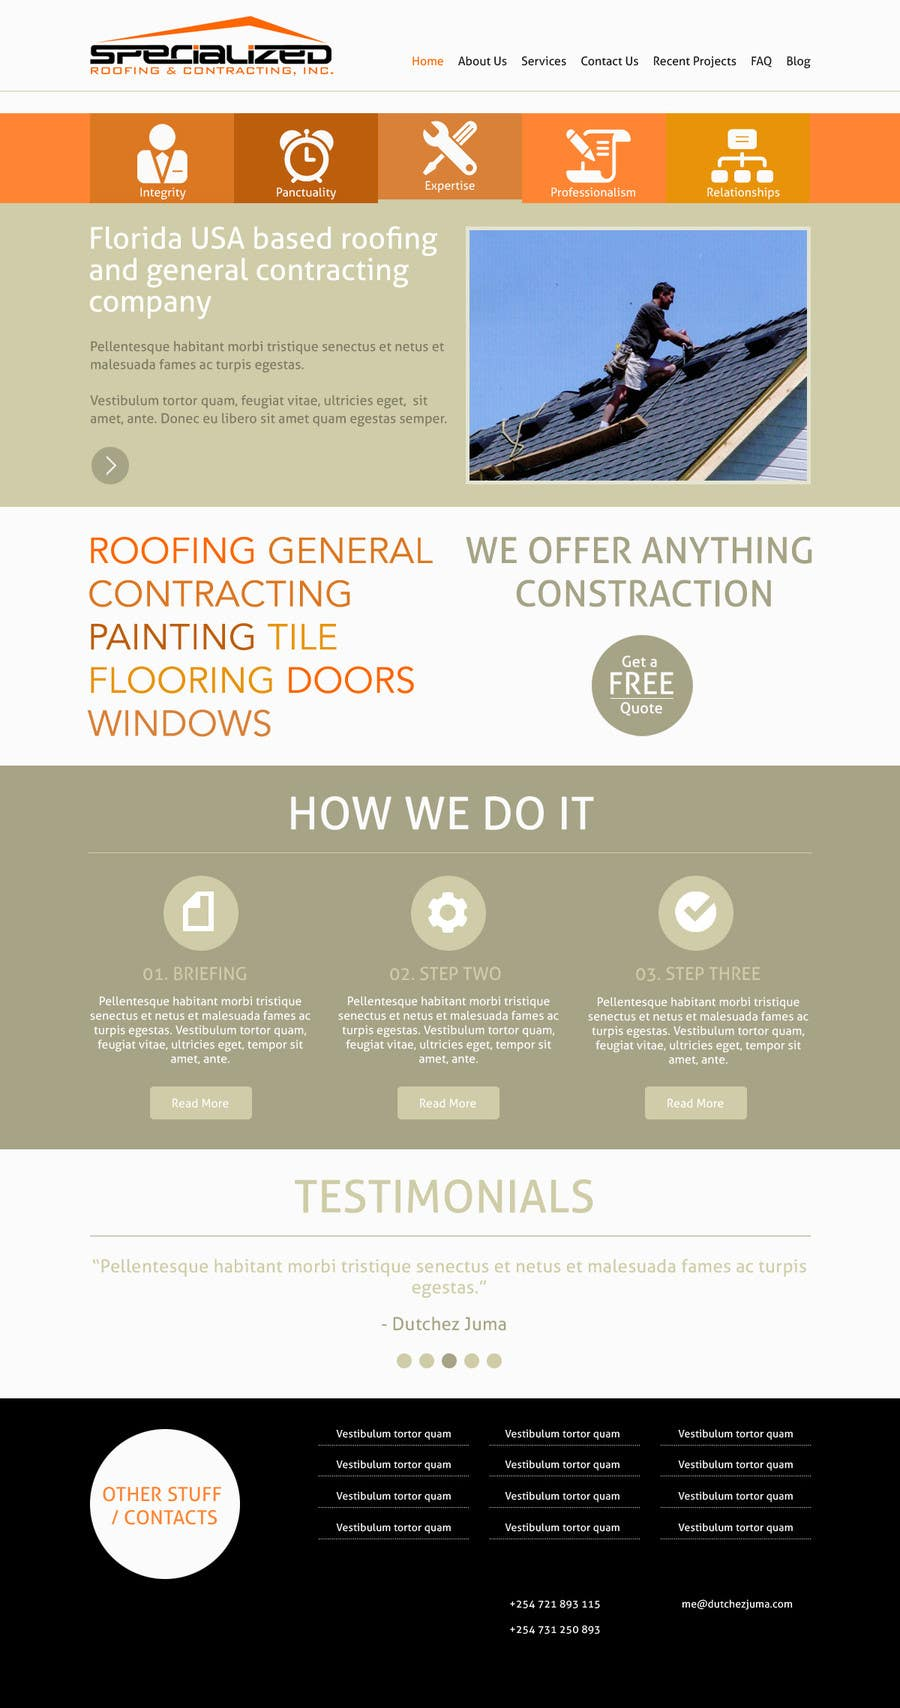 Bài tham dự cuộc thi #                                        14                                      cho                                         Wordpress Theme Design for Specialized Roofing & Contracting Inc.